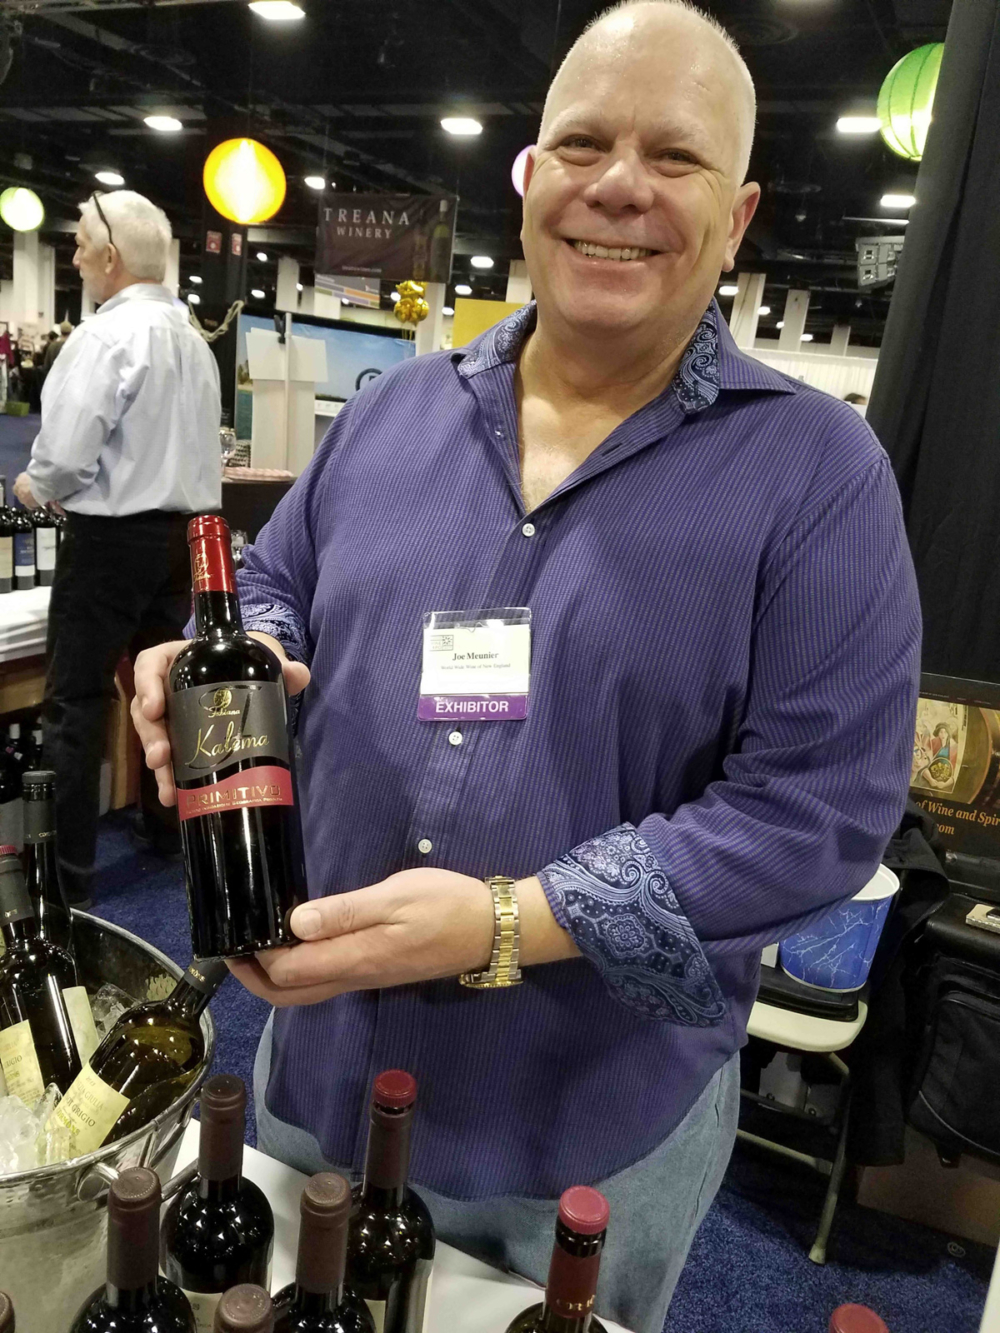 Some of the wines former trucker Joe Meunier, distributes through his company, World Wide Wine of England, include, Fabiana Kalema Primitivo Salento IGT 2012, Cormons Schioppettino Collio DOC 2013, and Gino Alteo Amarone della Valpolicella Classico 2010.